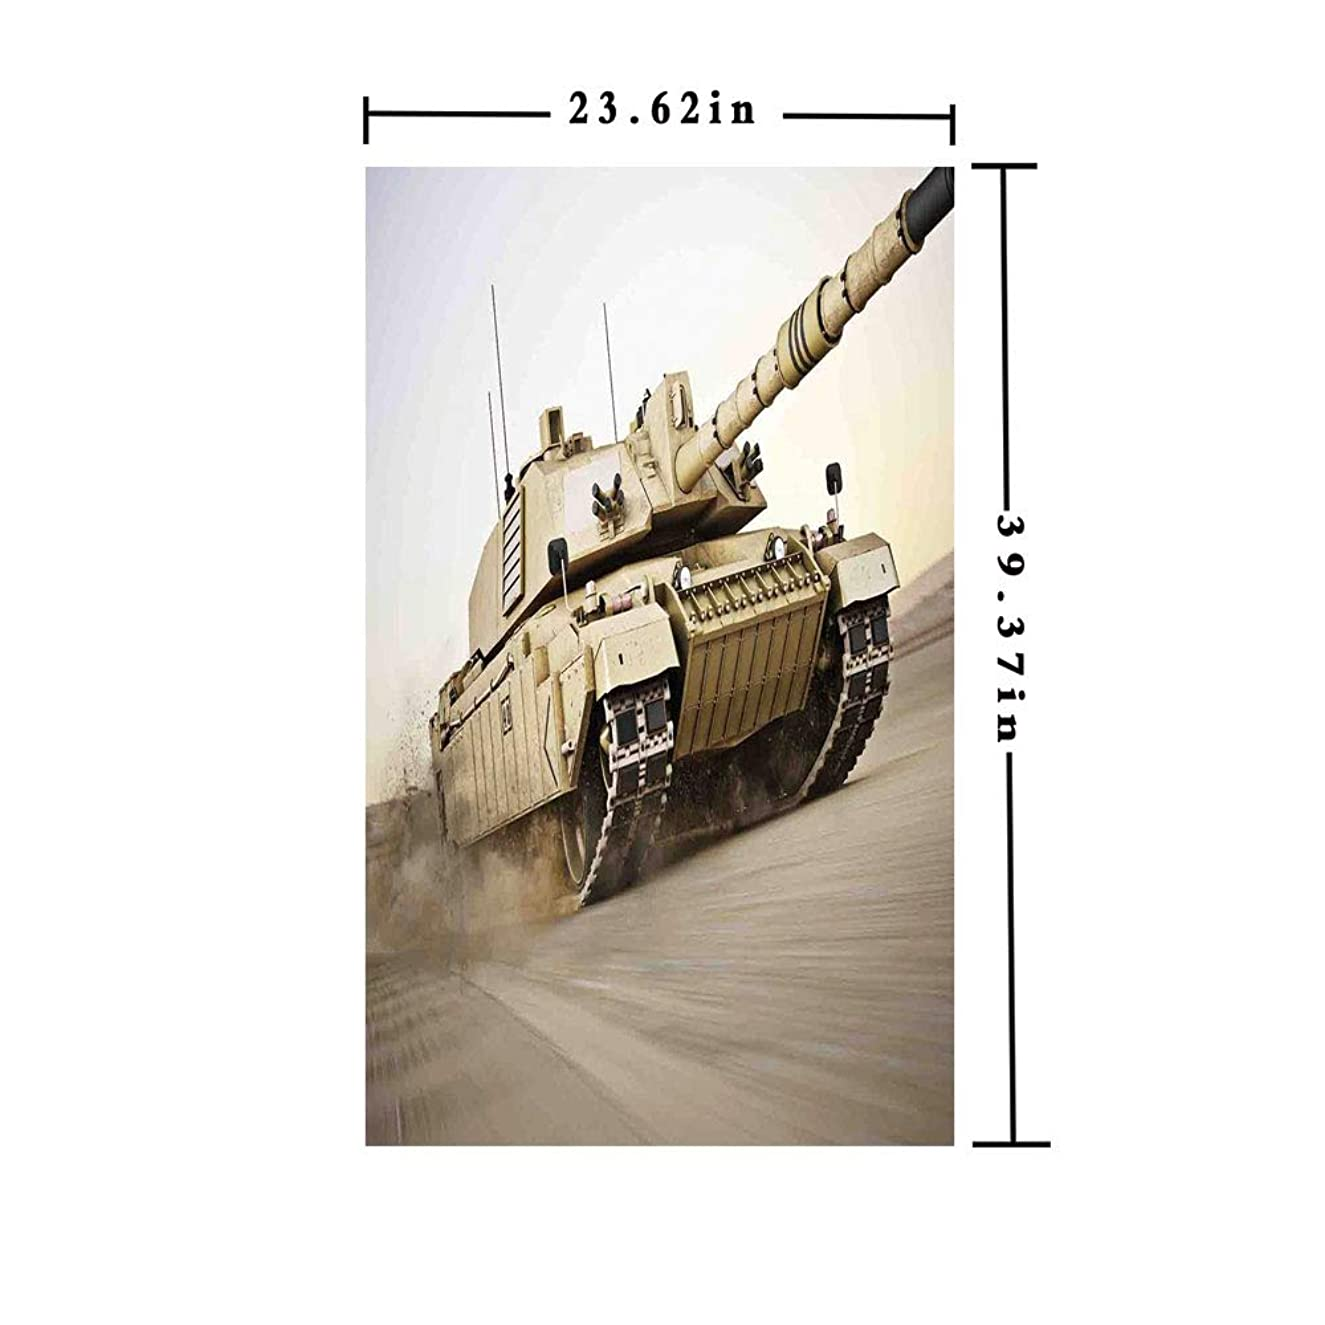 3D No Glue Static Decorative Privacy Window Films,Military Tank Moving Speedy with Motion Blur over Sand Dangerous Artillery Weapon,W15.7xL63in,For Living Room Bathroom Kitchen Front Door with Beige